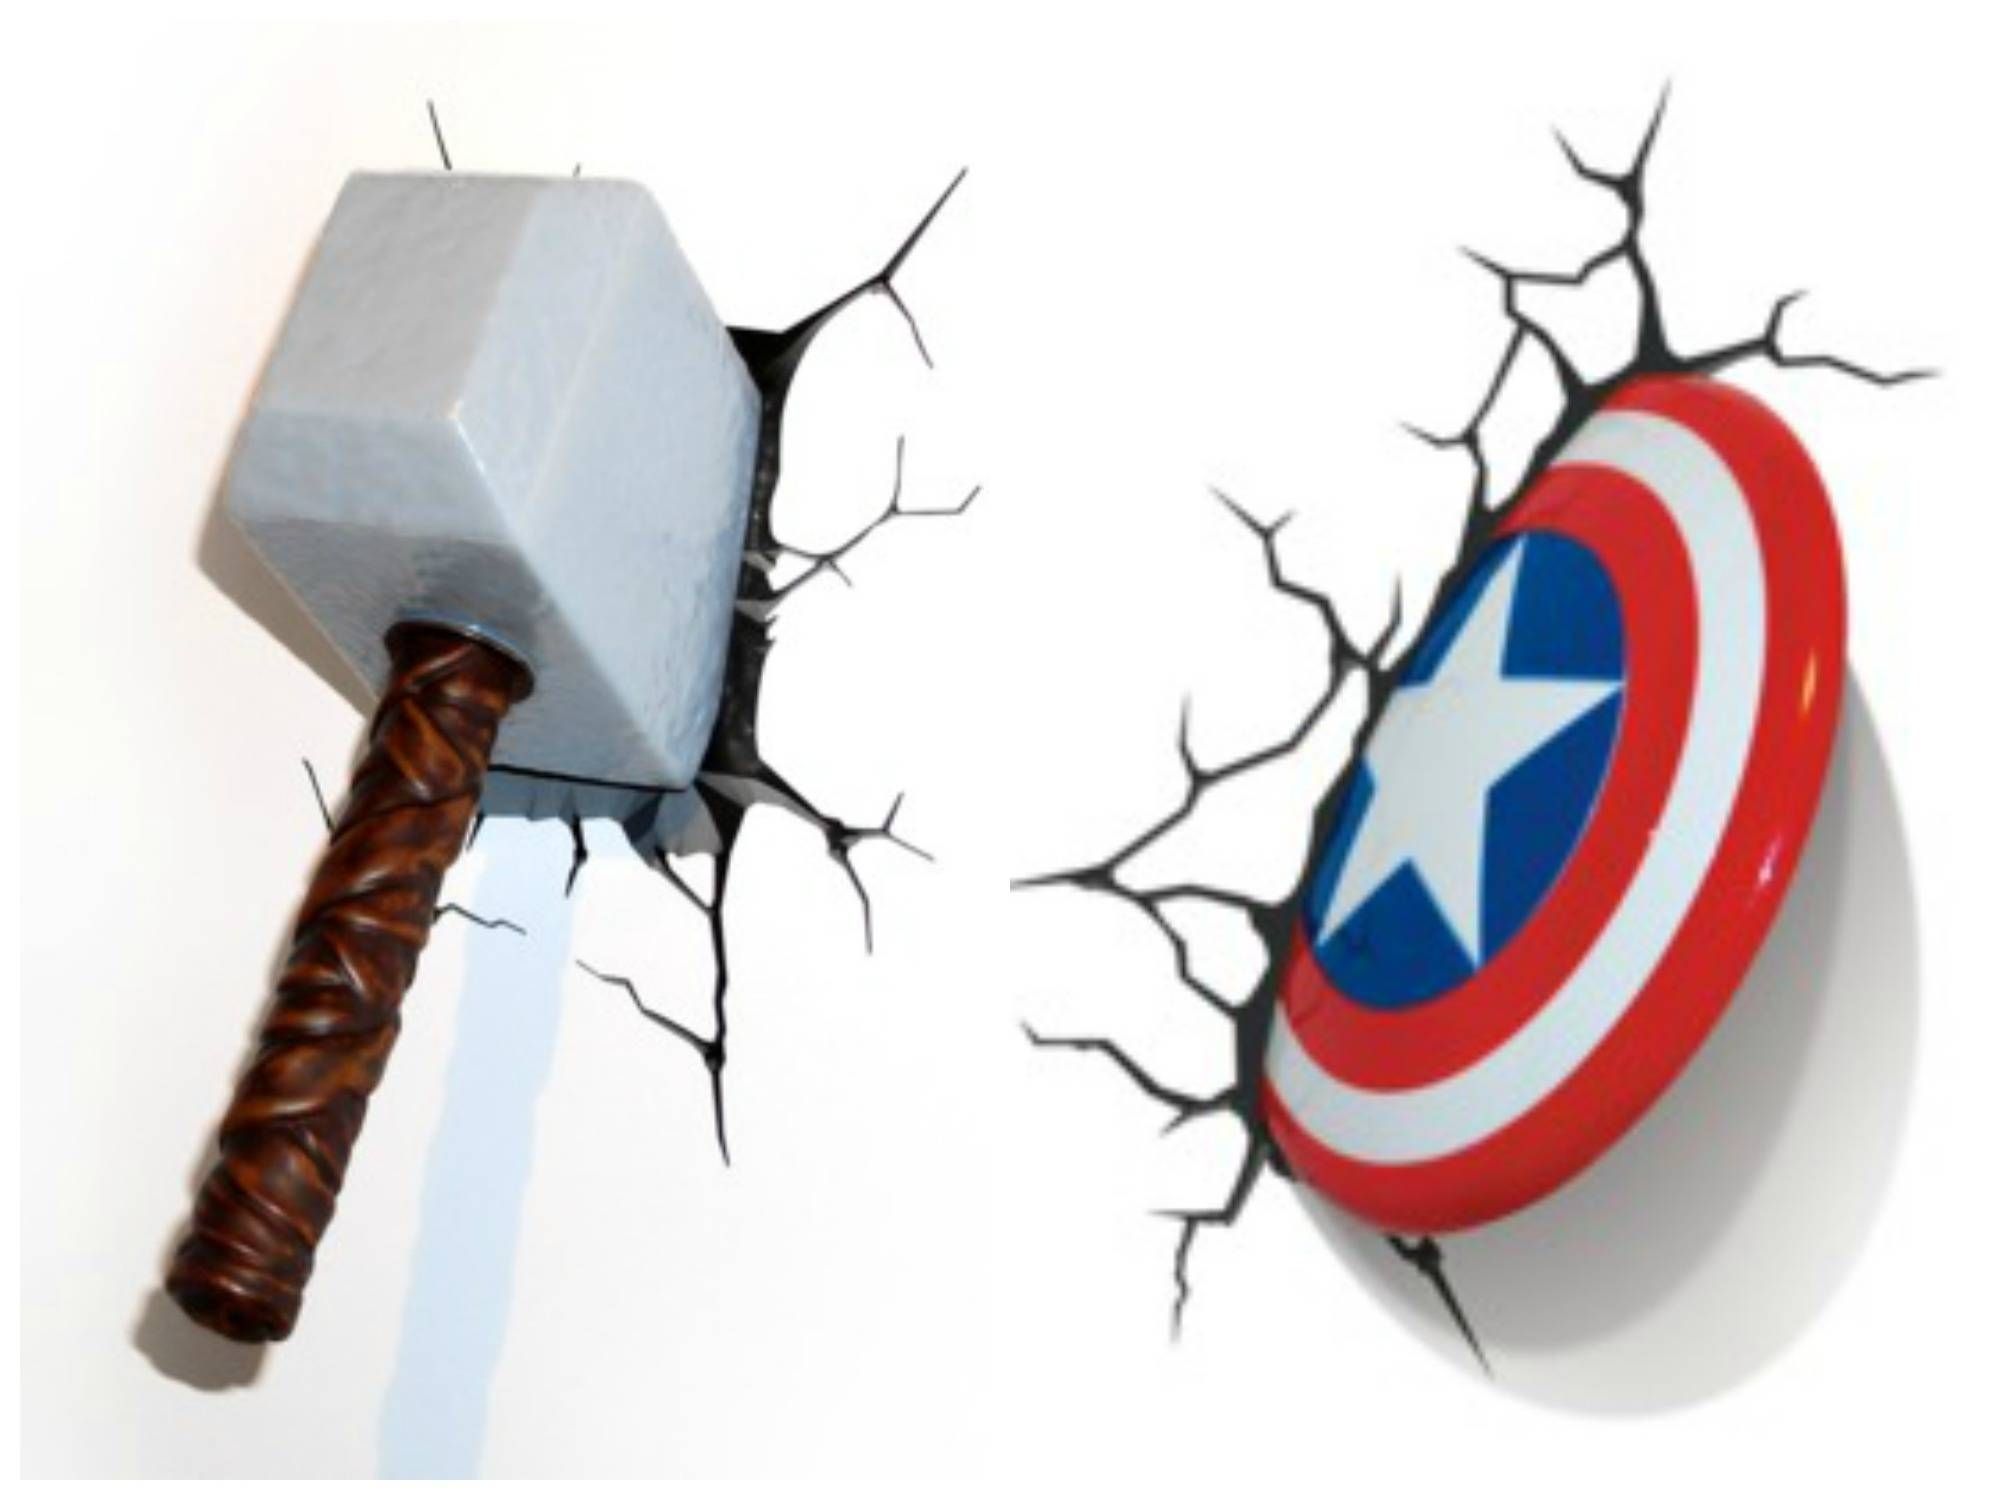 Captivating 40+ 3D Wall Art Nightlight Inspiration Design Of 20 3D In Most Recently Released Marvel 3D Wall Art (View 4 of 20)